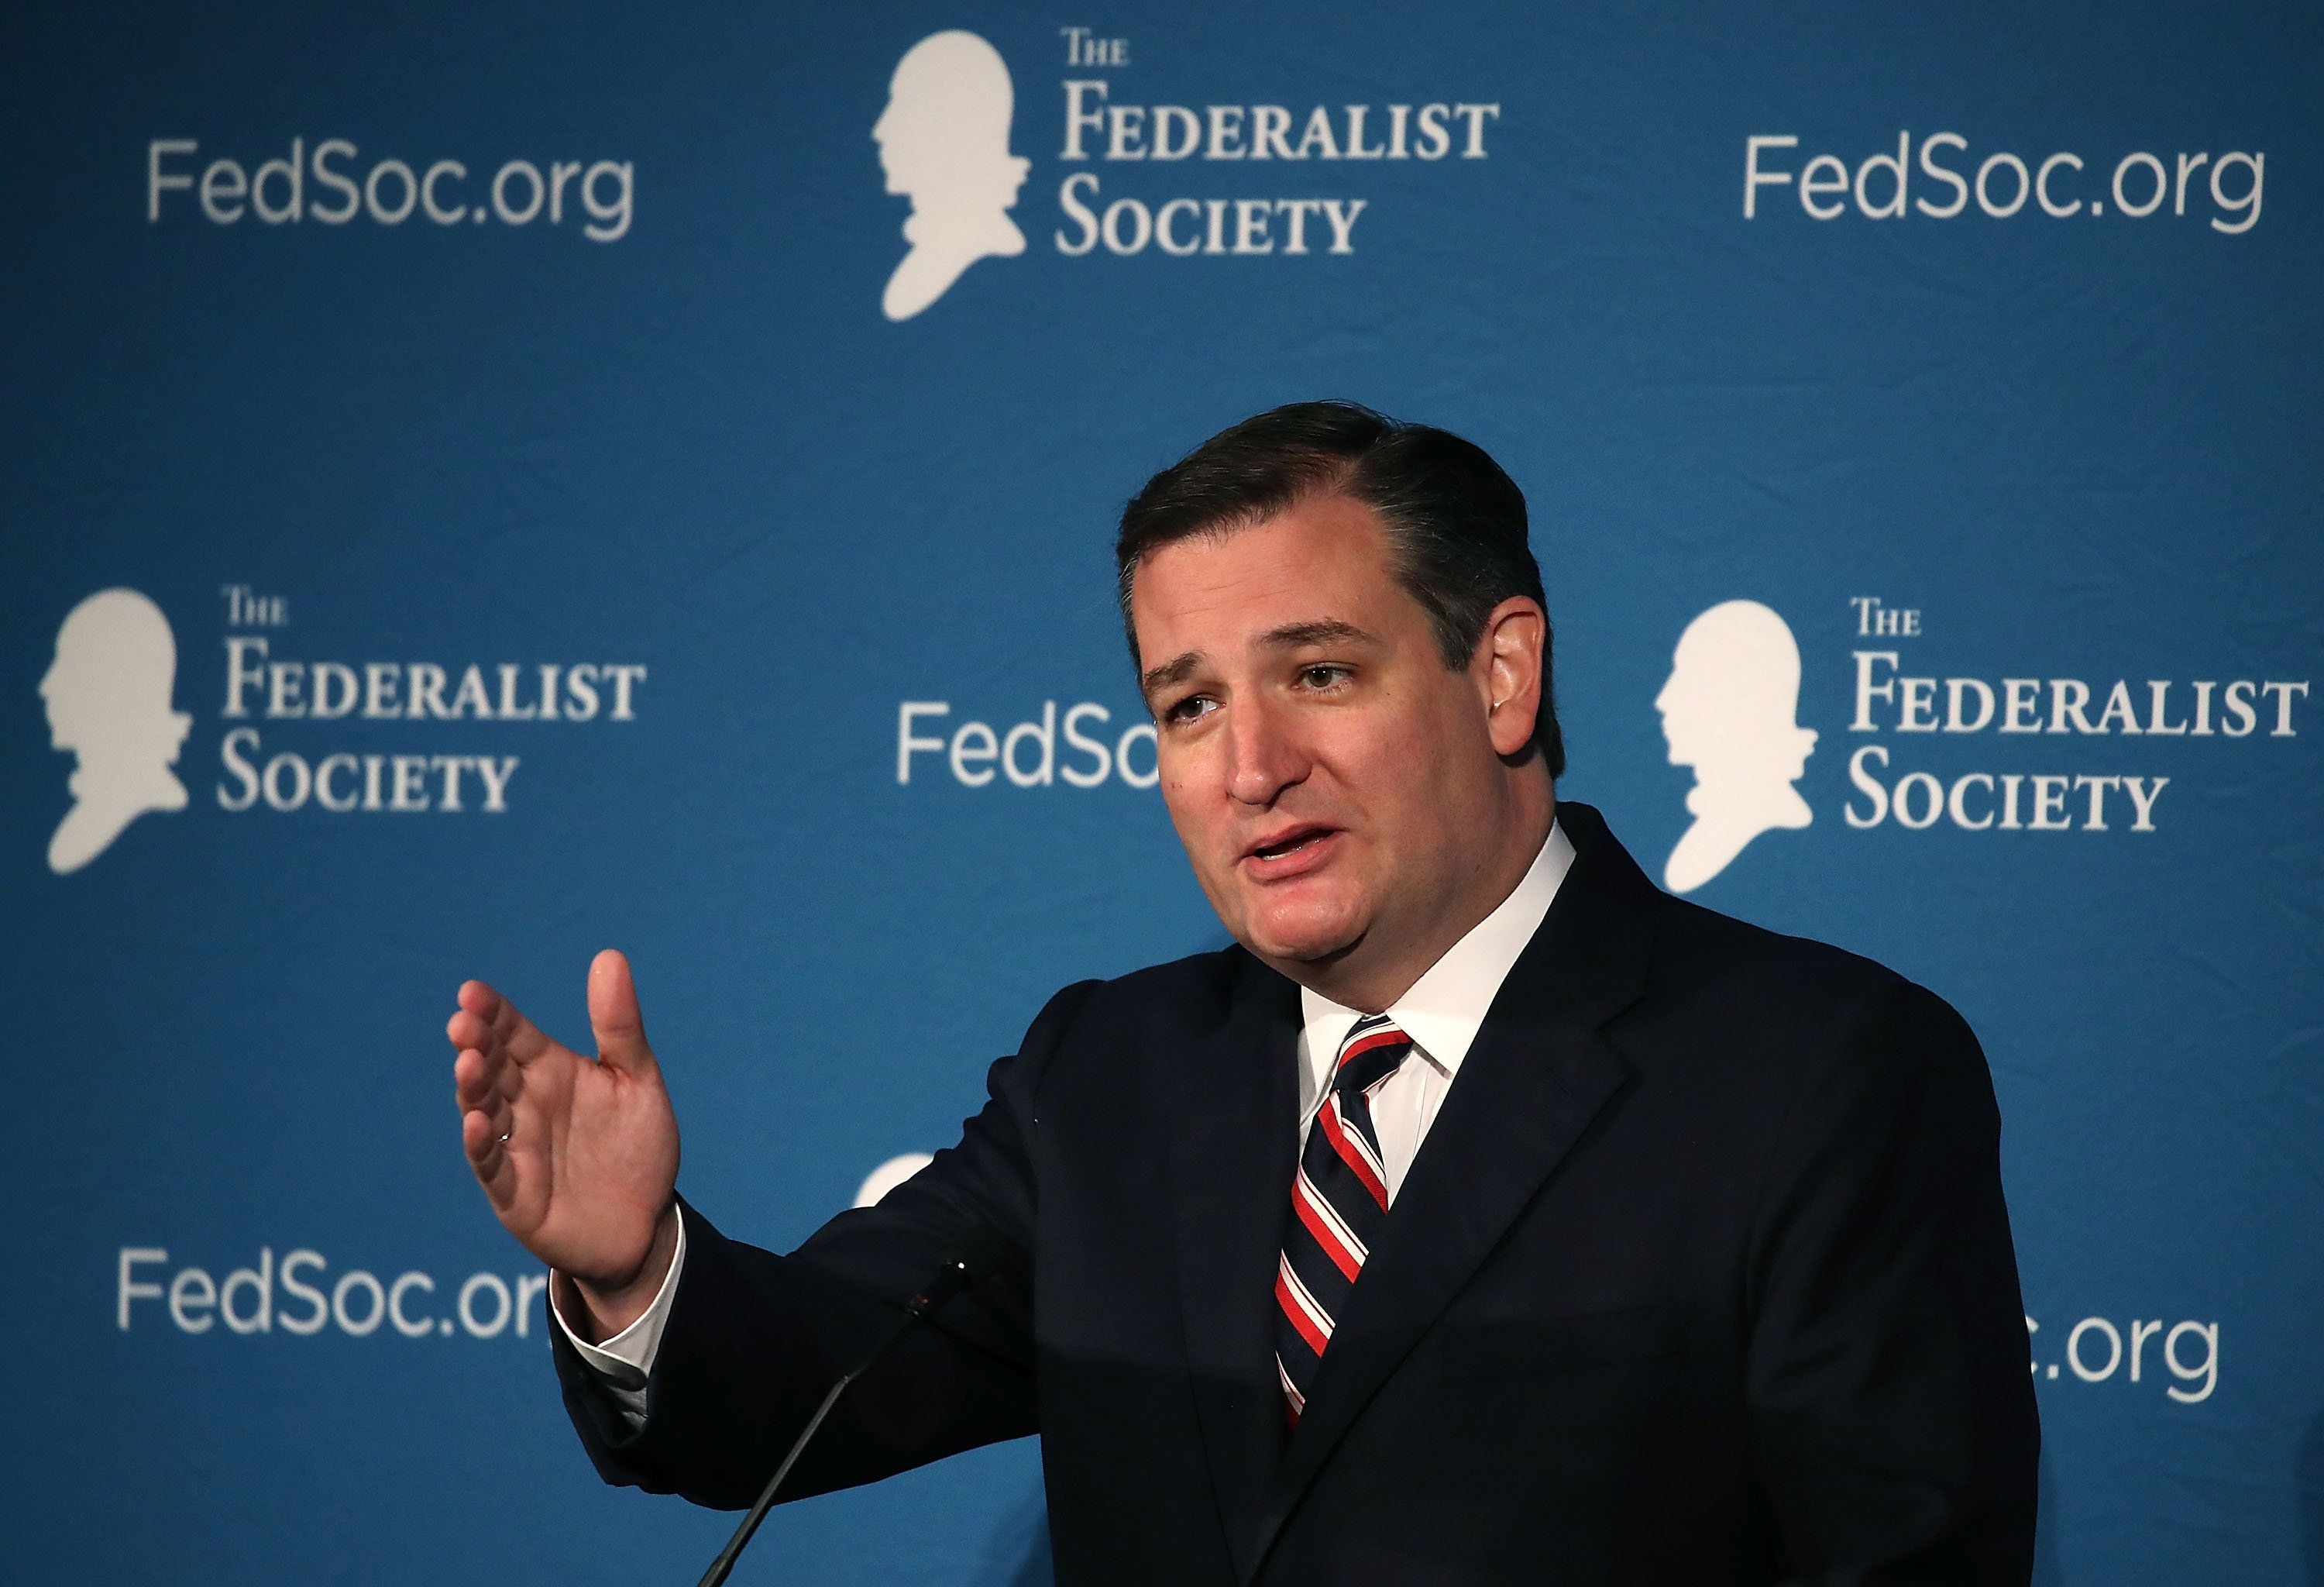 Sen. Ted Cruz (R-Texas) speaks at the Federalist Society's 2016 National Lawyers Convention in Washington, D.C.